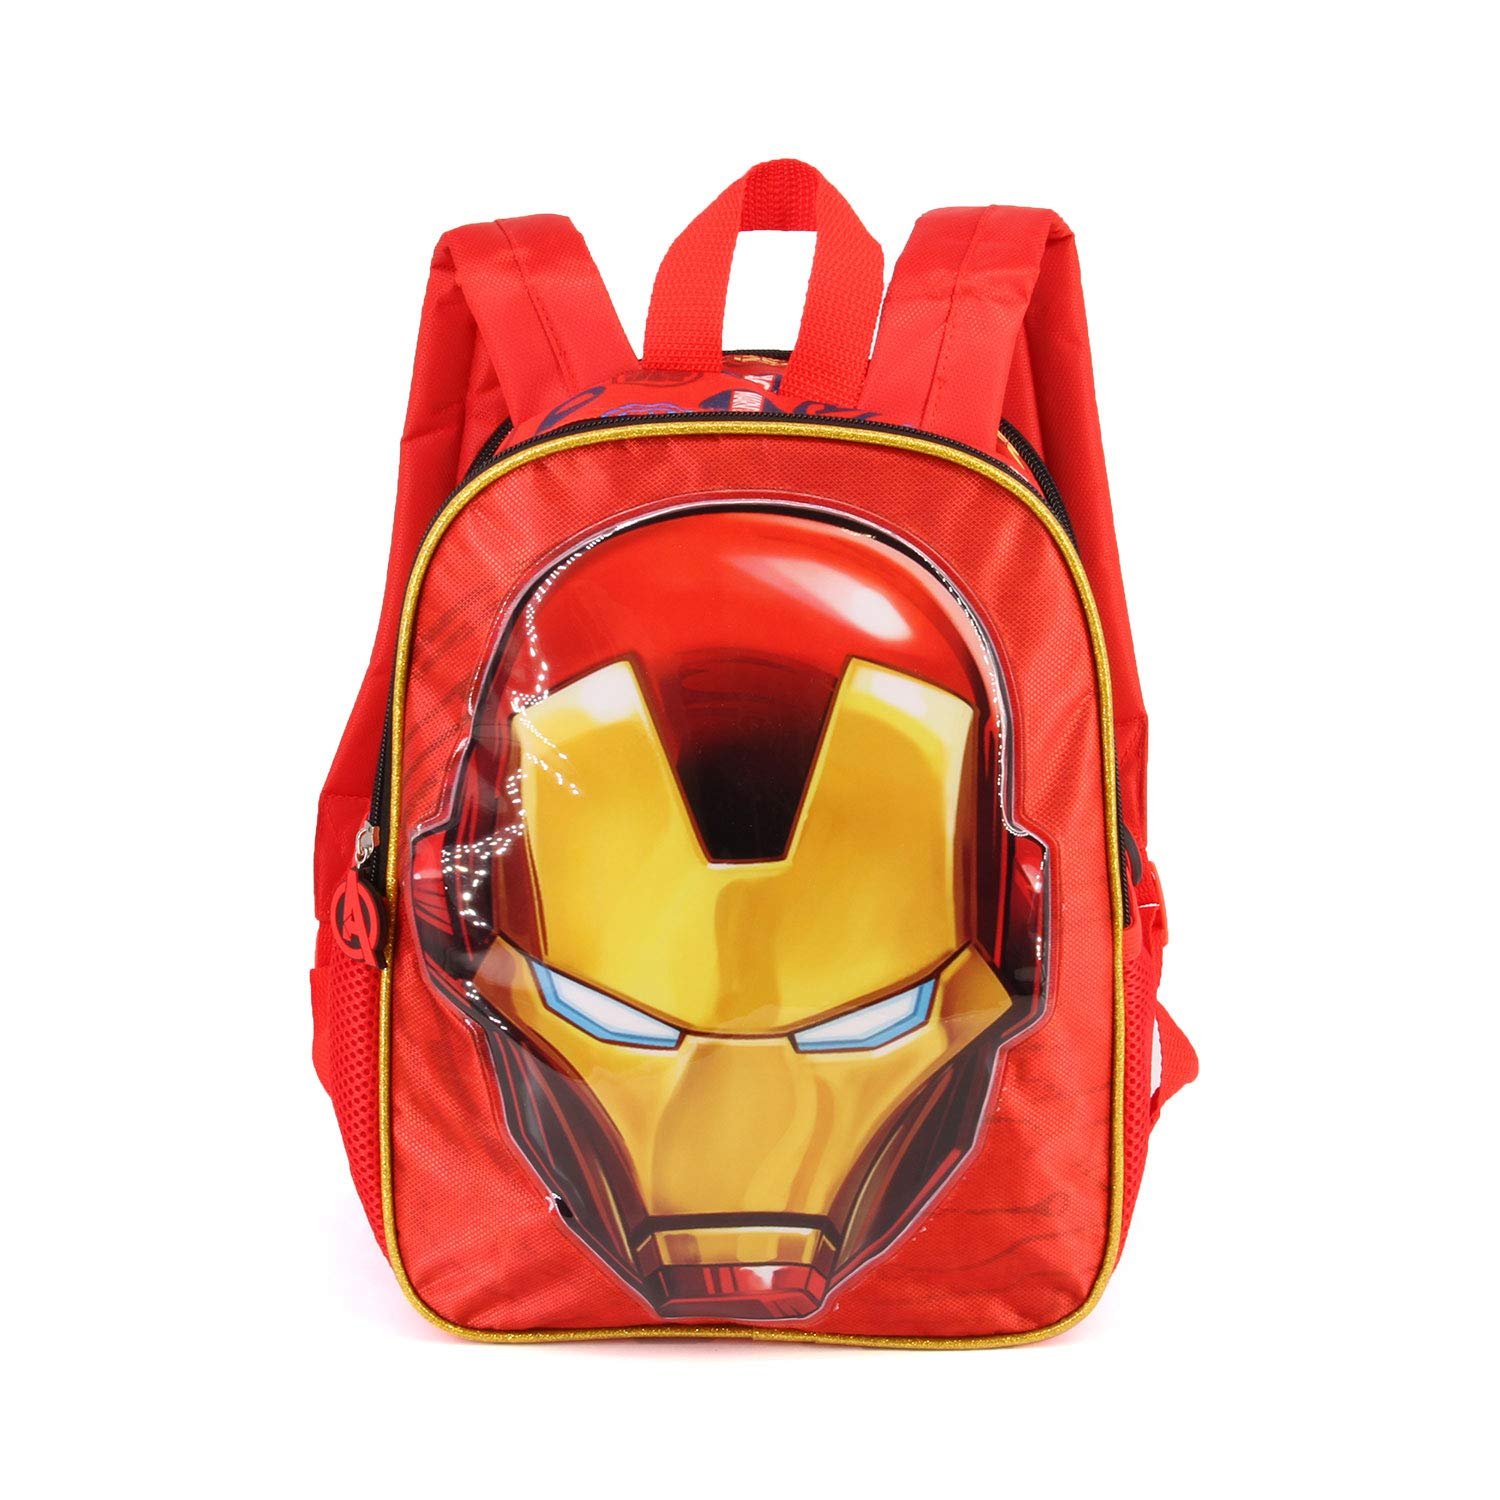 ZAINO Zainetto Reversibile - MARVEL IRON MAN